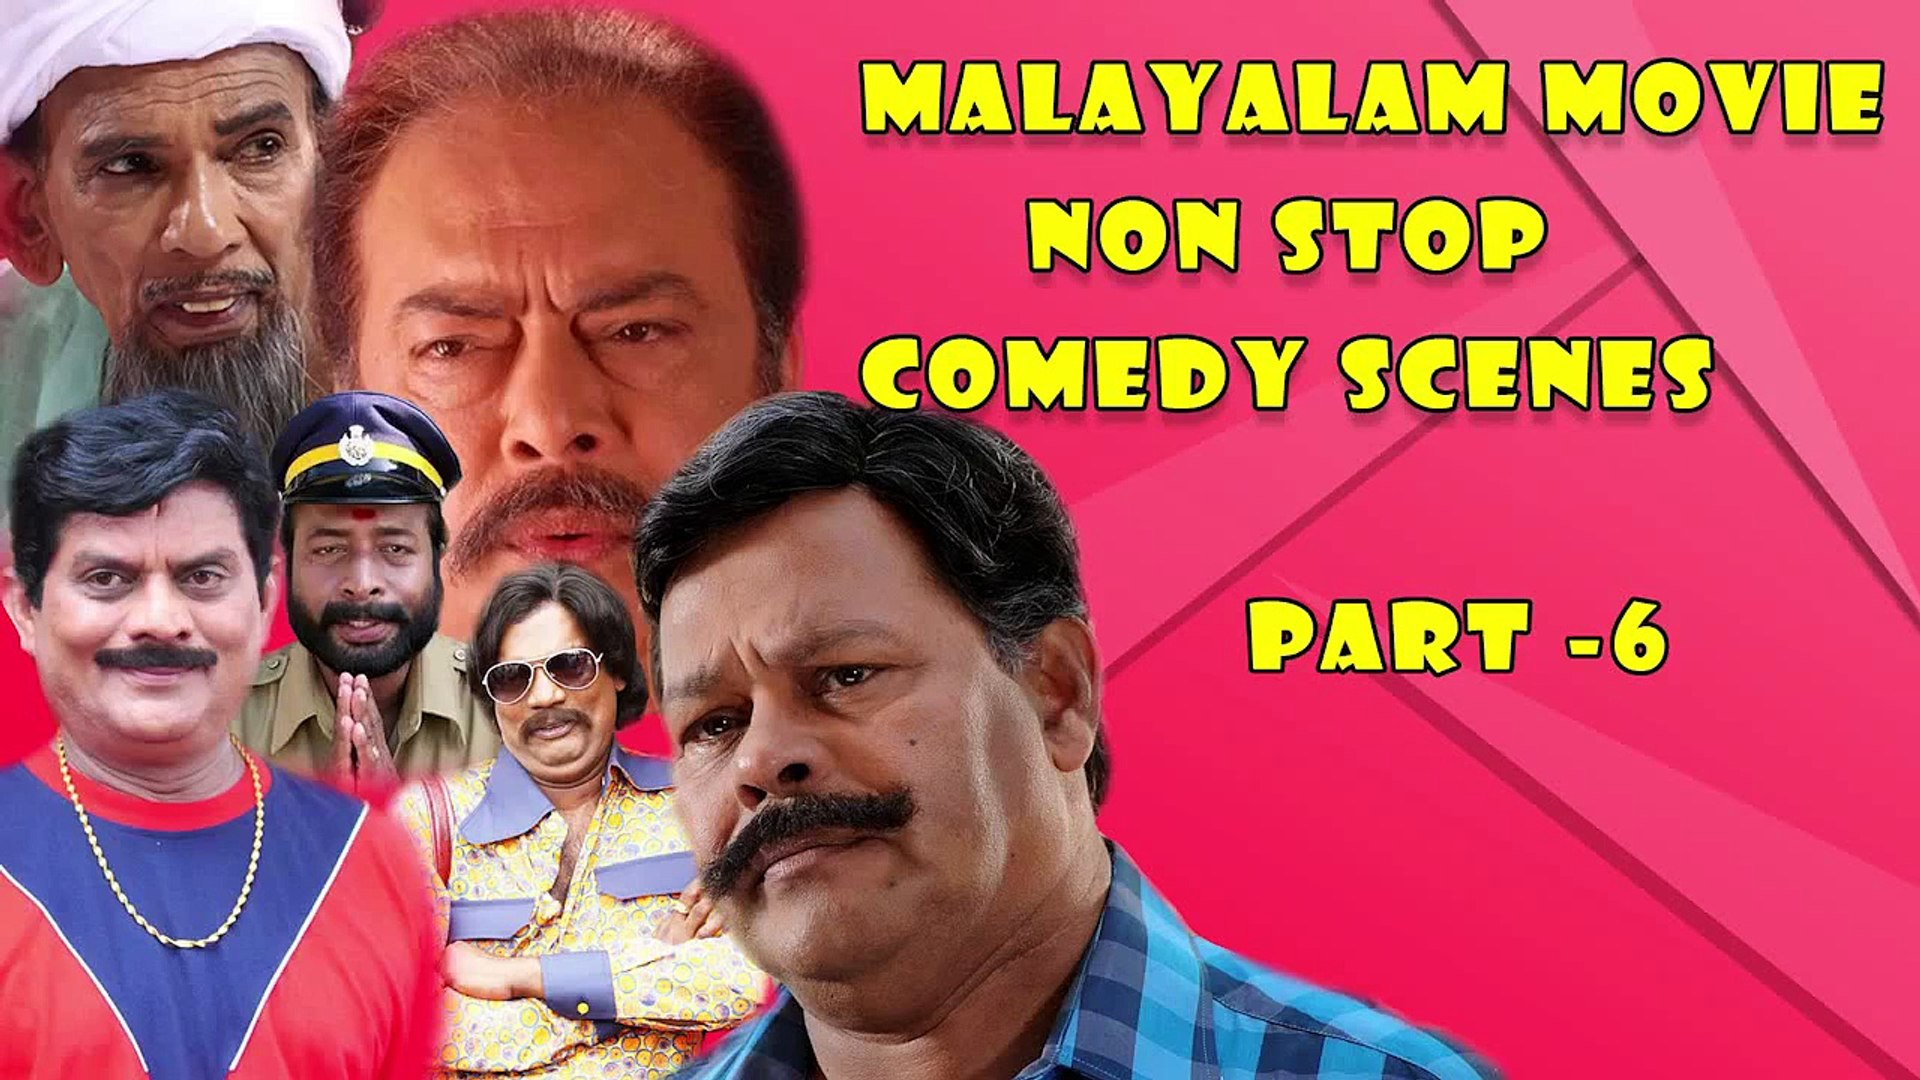 Malayalam Movie Non Stop Comedy Scenes 6 | Malayalam Comedy Scenes | Malayalam Movie Comed